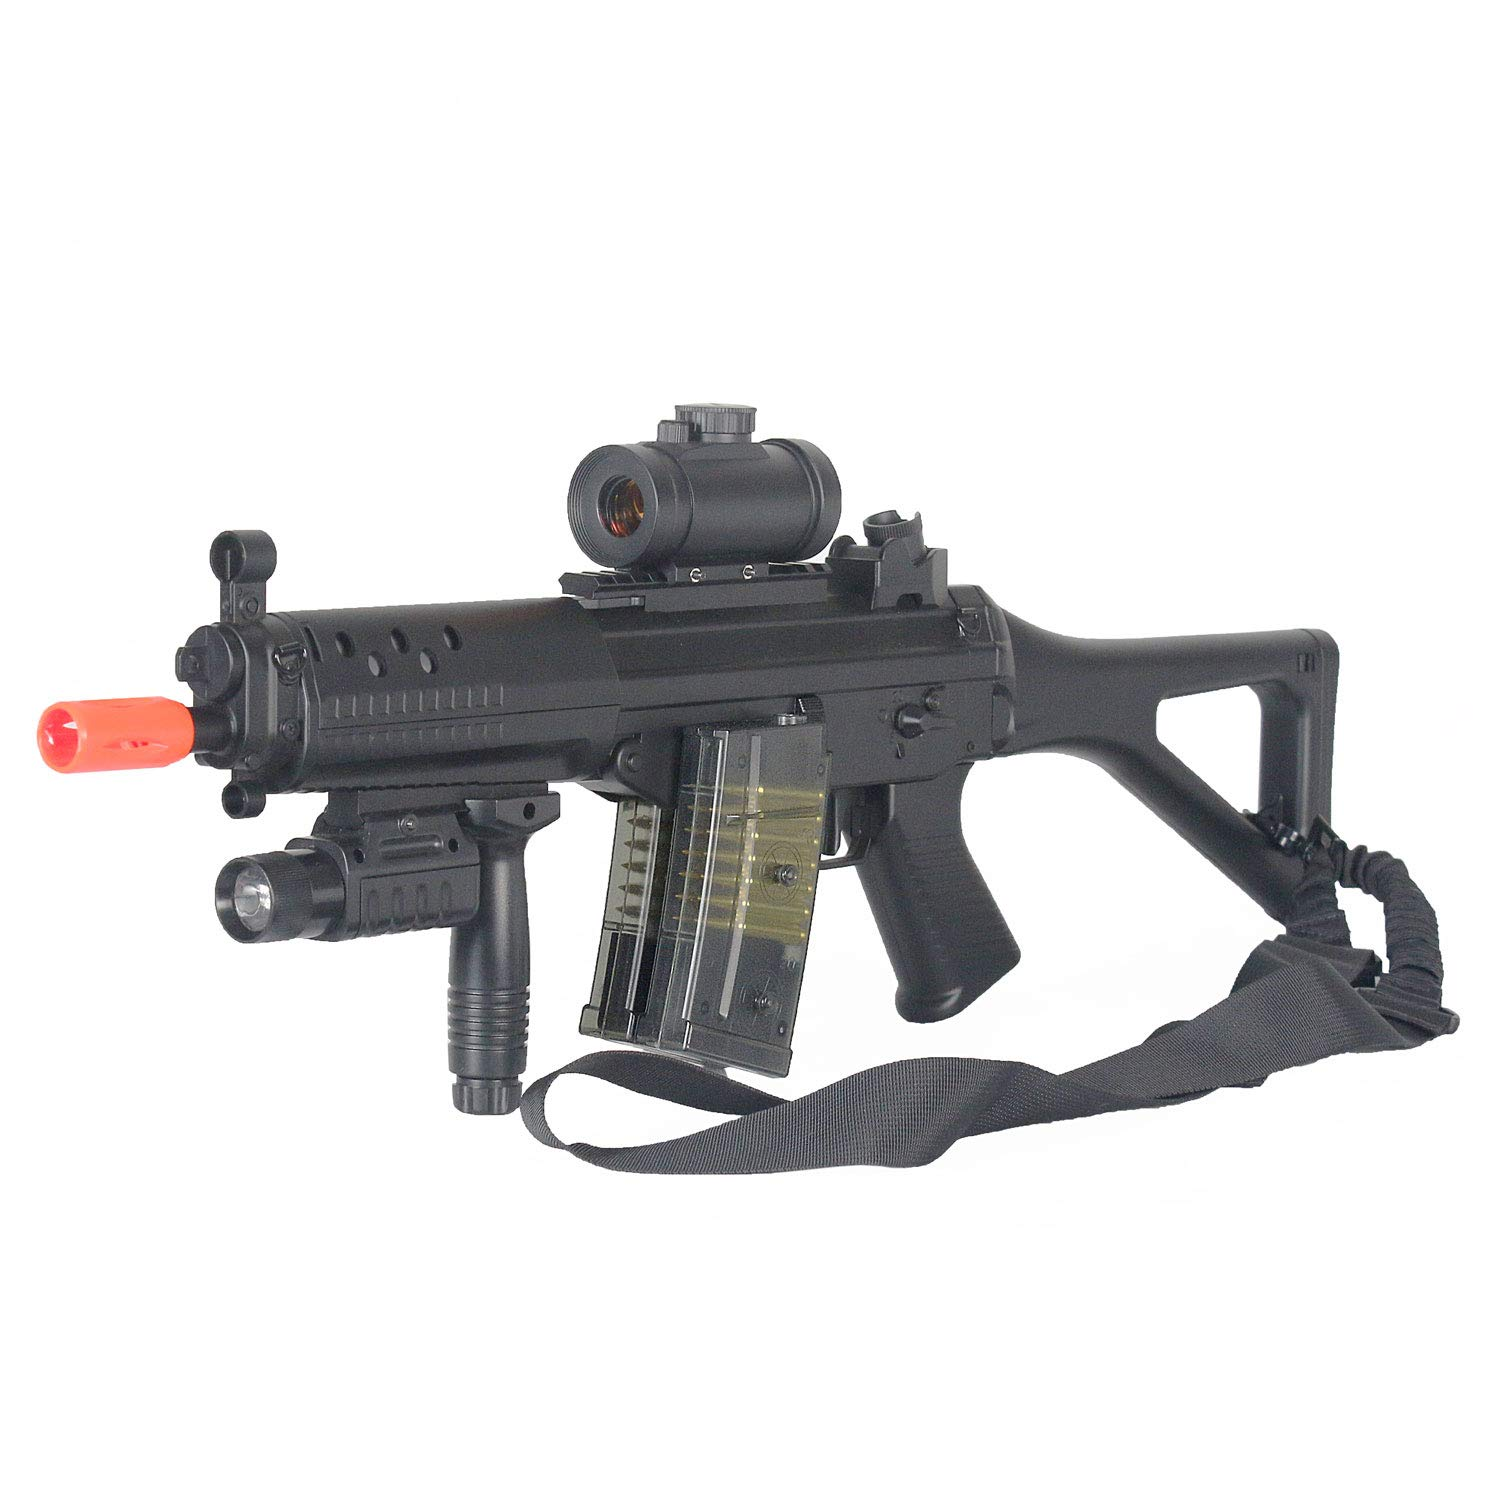 BBTac Double Eagle Airsoft Gun AEG Electric Rifle Full Auto Great Starter with Premium Airsoft Carrying Sling by BBTac